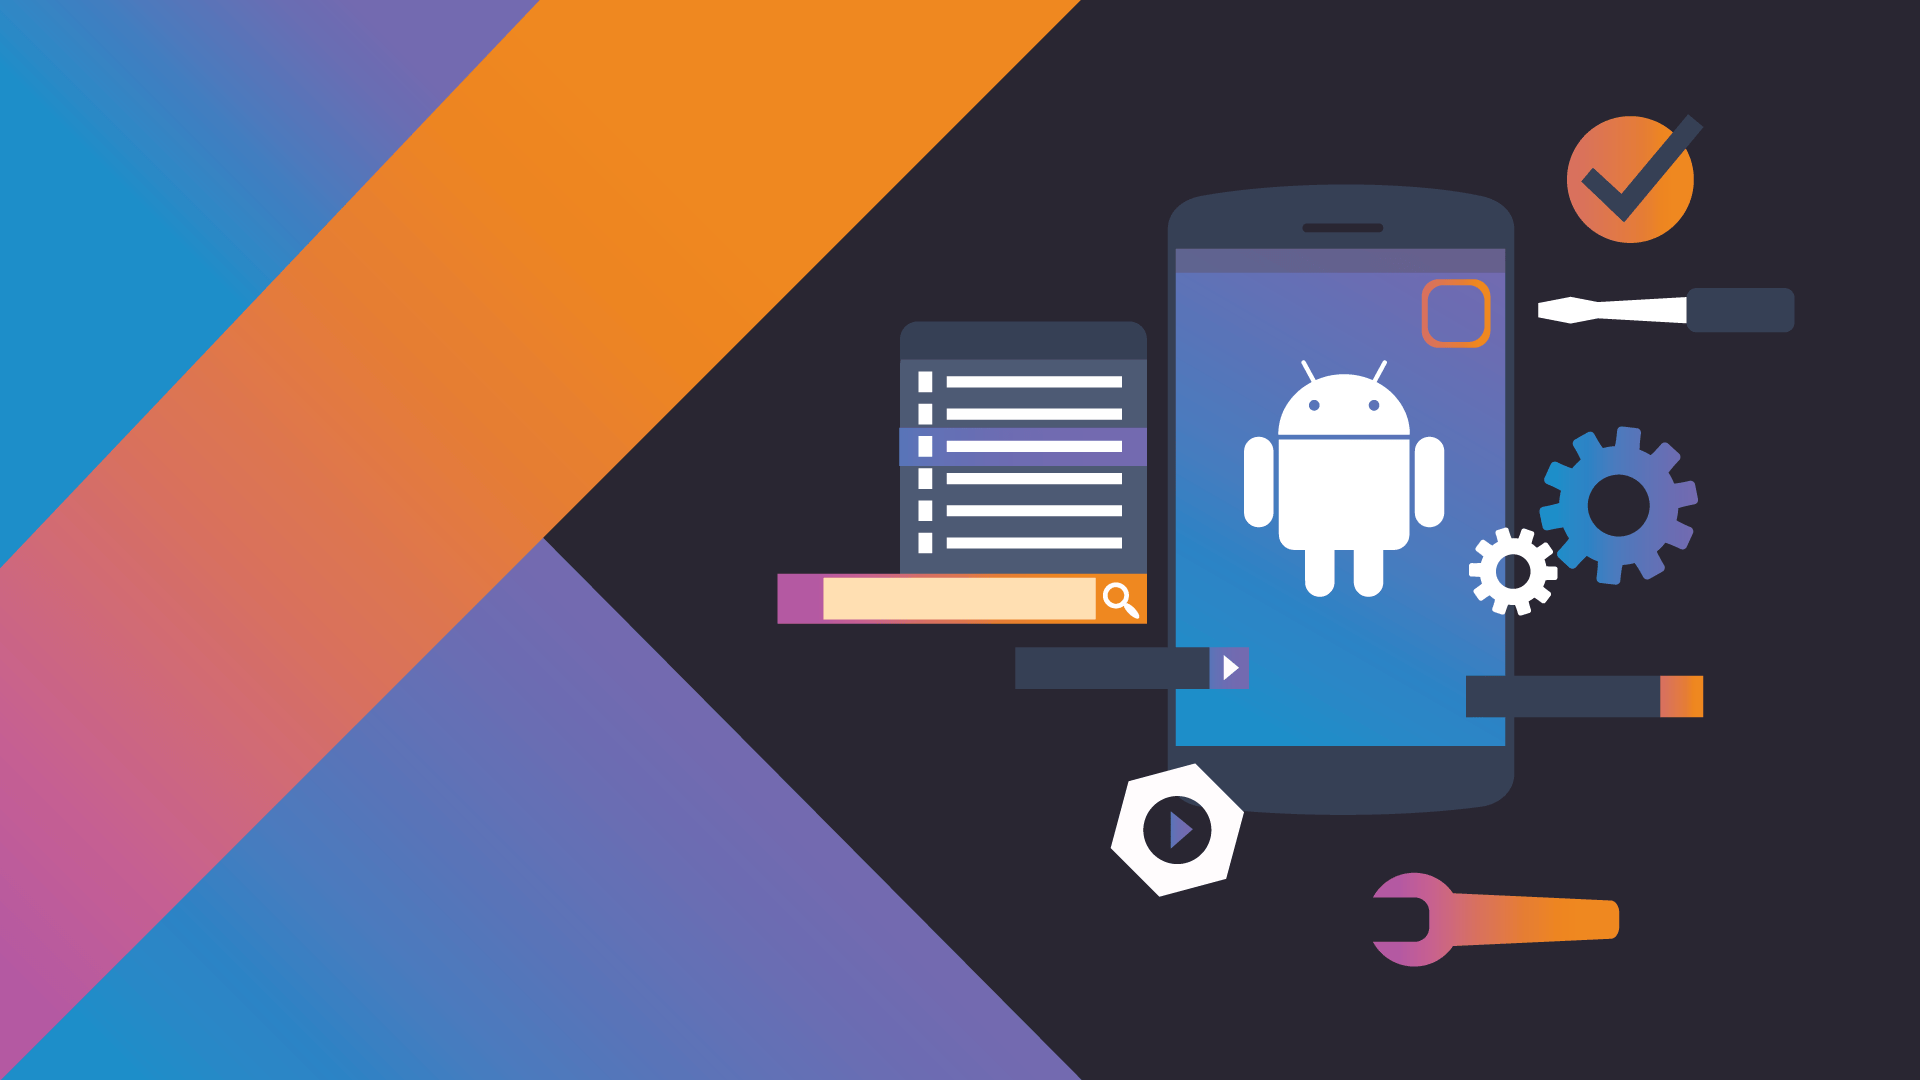 Kotlin powered Android app: MVVM, Koin and Coroutines